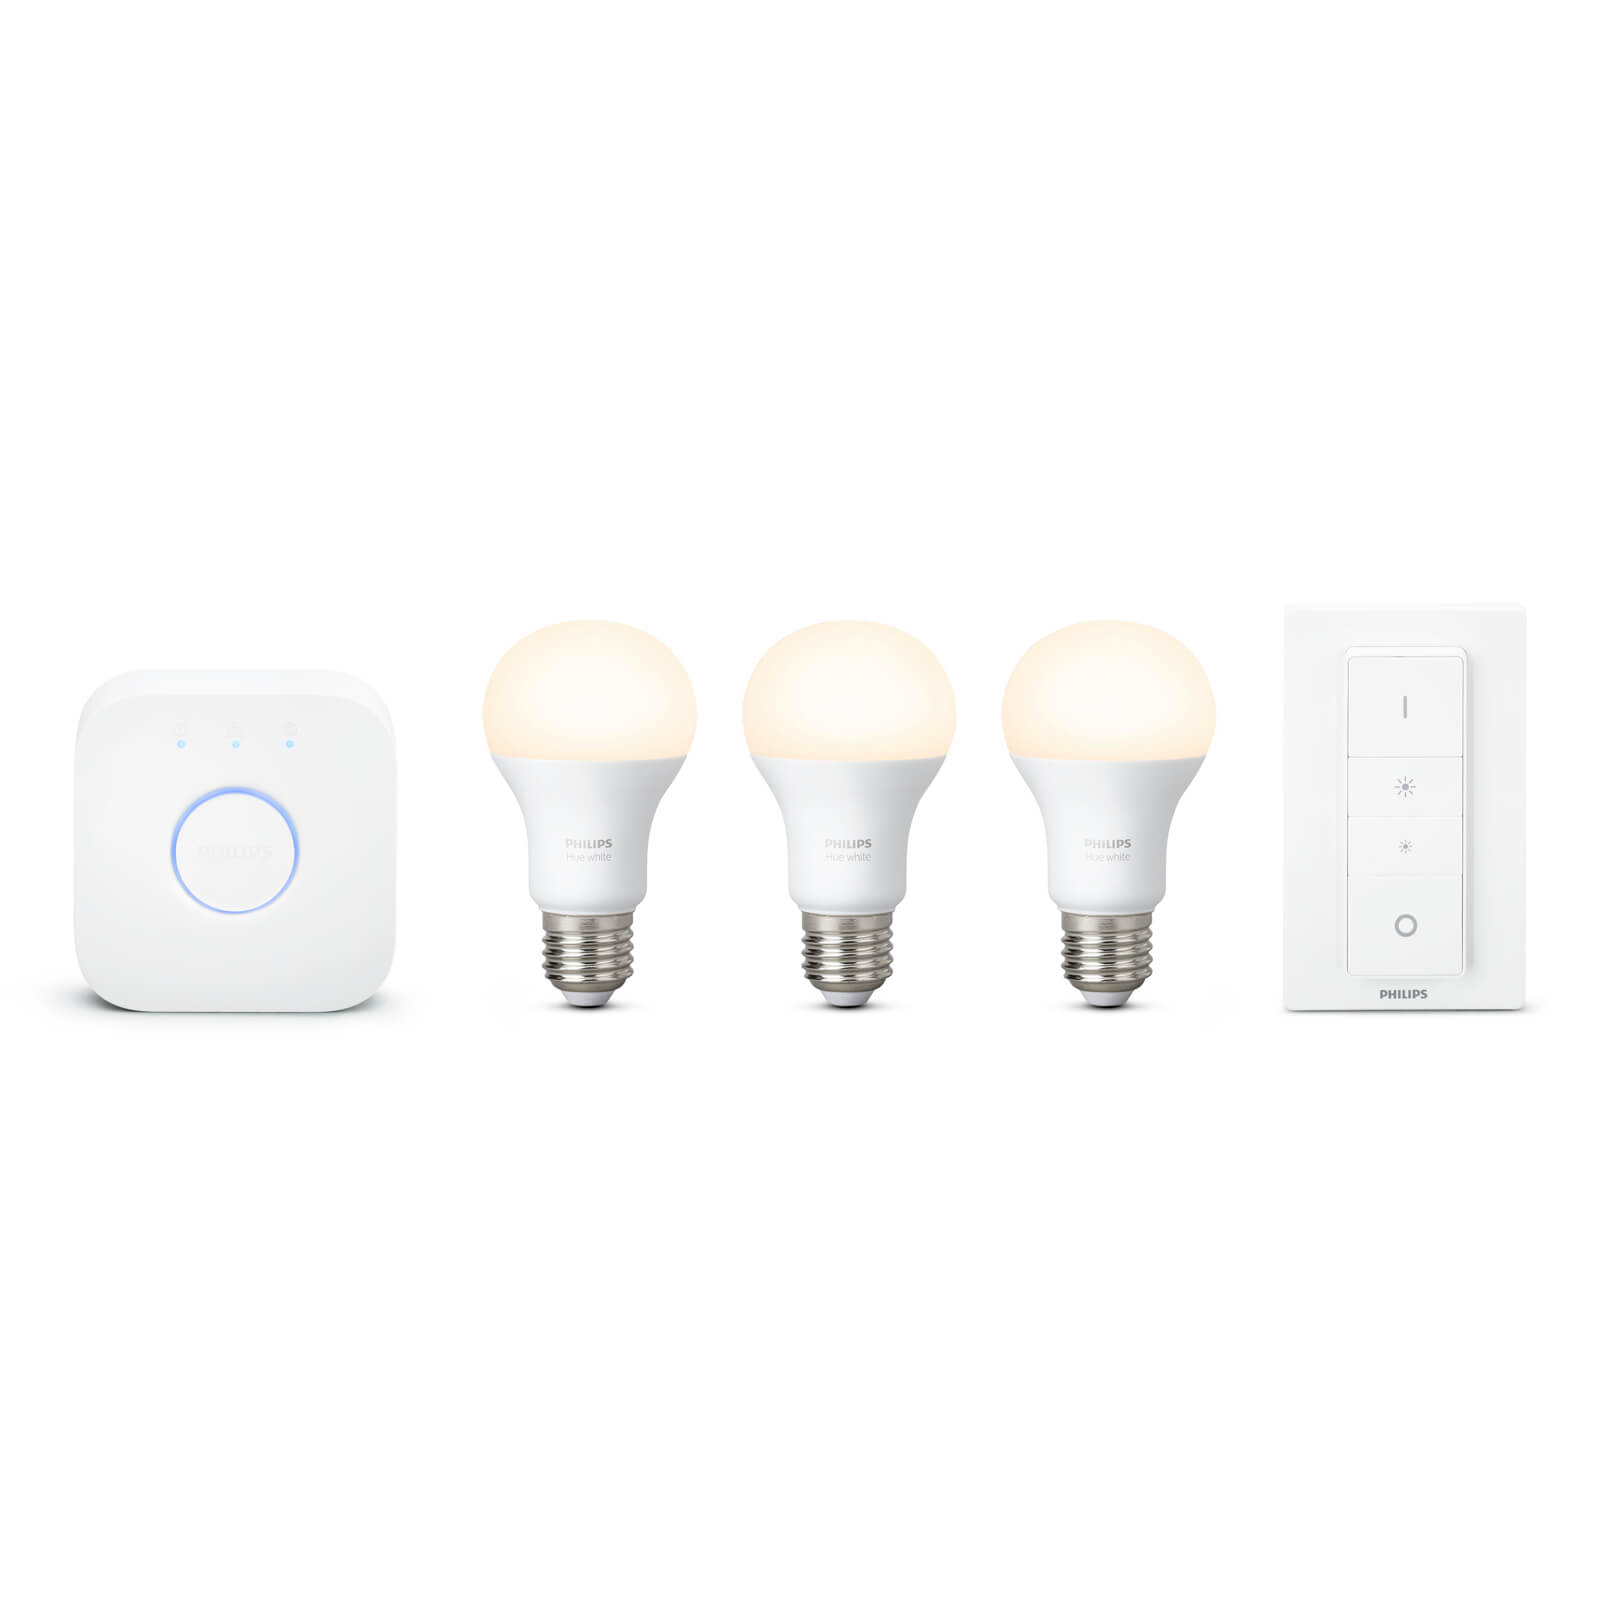 philips hue white starterset 3 lampen bridge 2 1 schakelaar. Black Bedroom Furniture Sets. Home Design Ideas